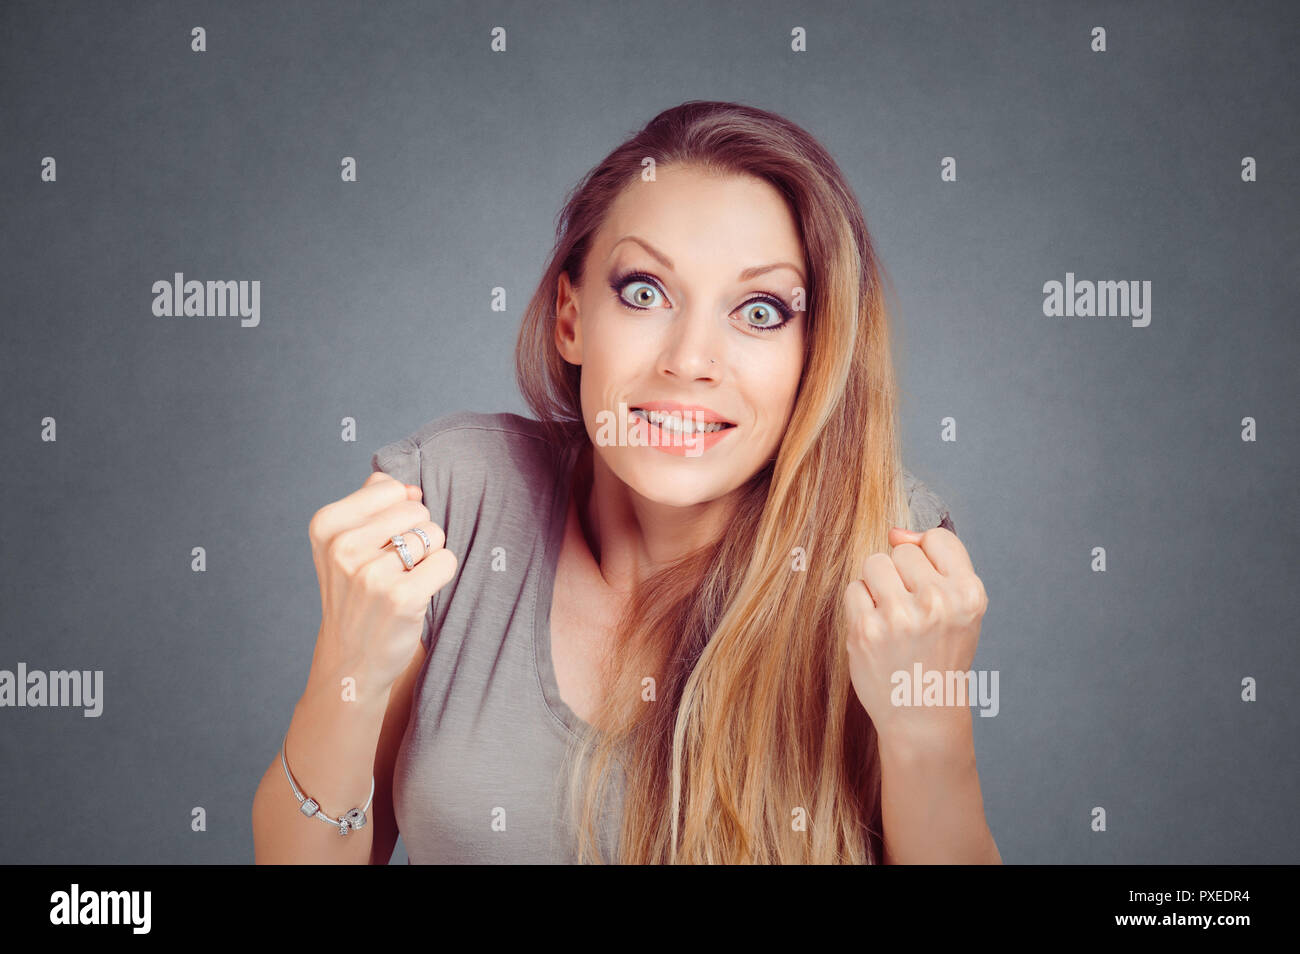 woman stunned pumping fists hands clenched in expectation about to win a lottery or something isolated on gray studio wall Background with copy space. - Stock Image